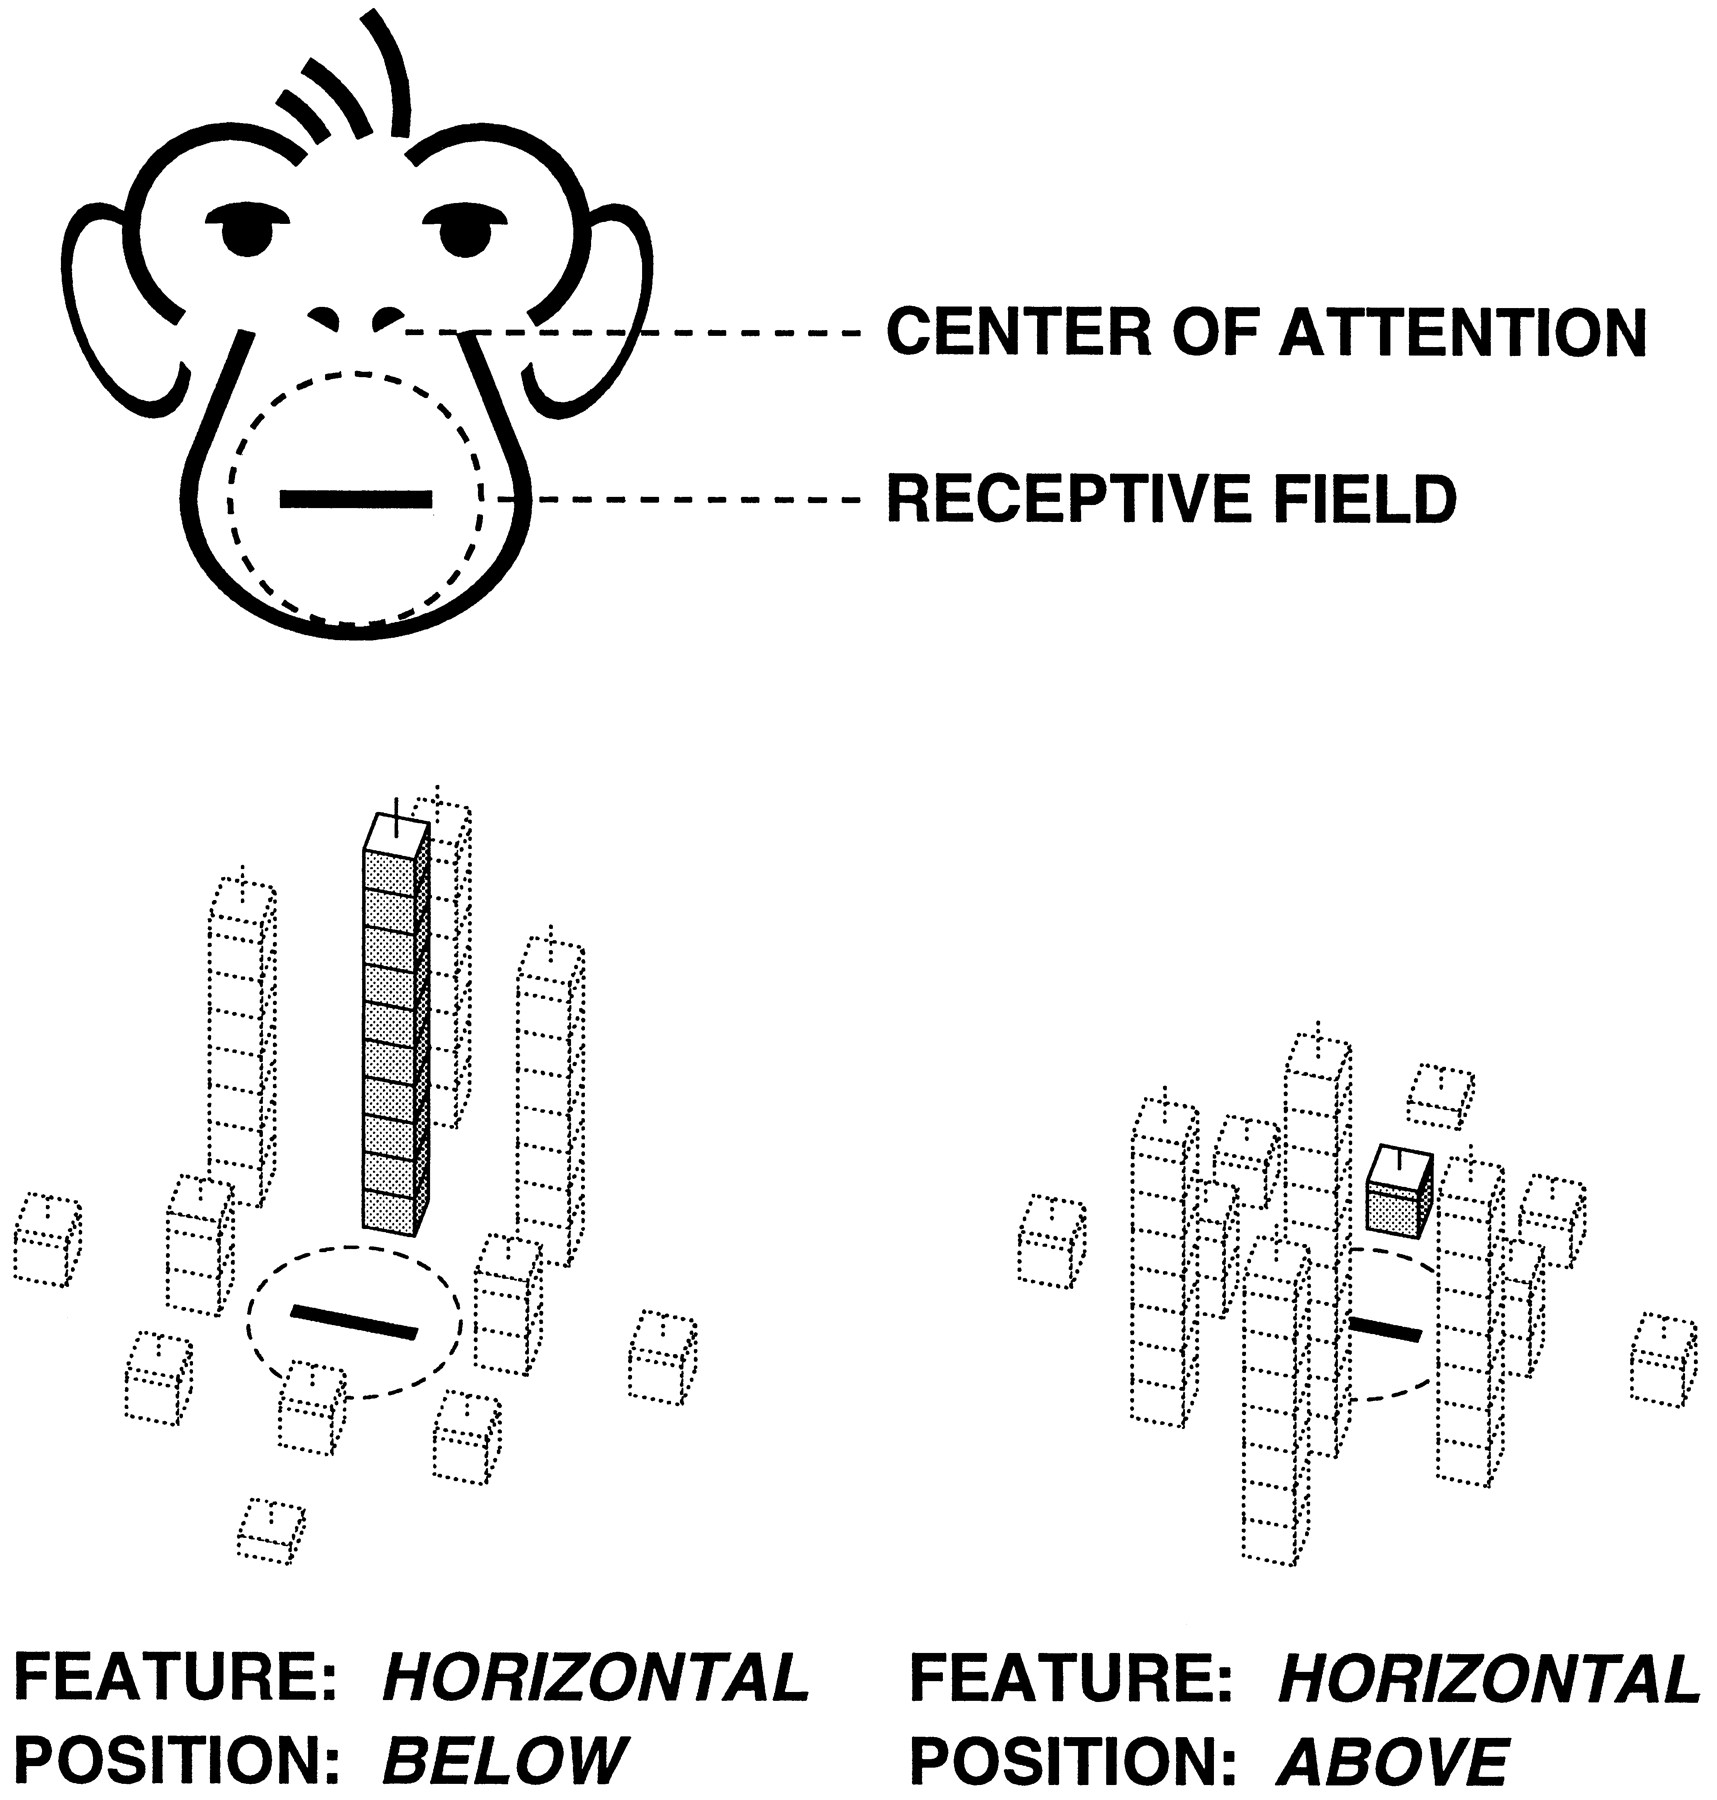 Spatial Attention Effects In Macaque Area V4 Journal Of Neuroscience